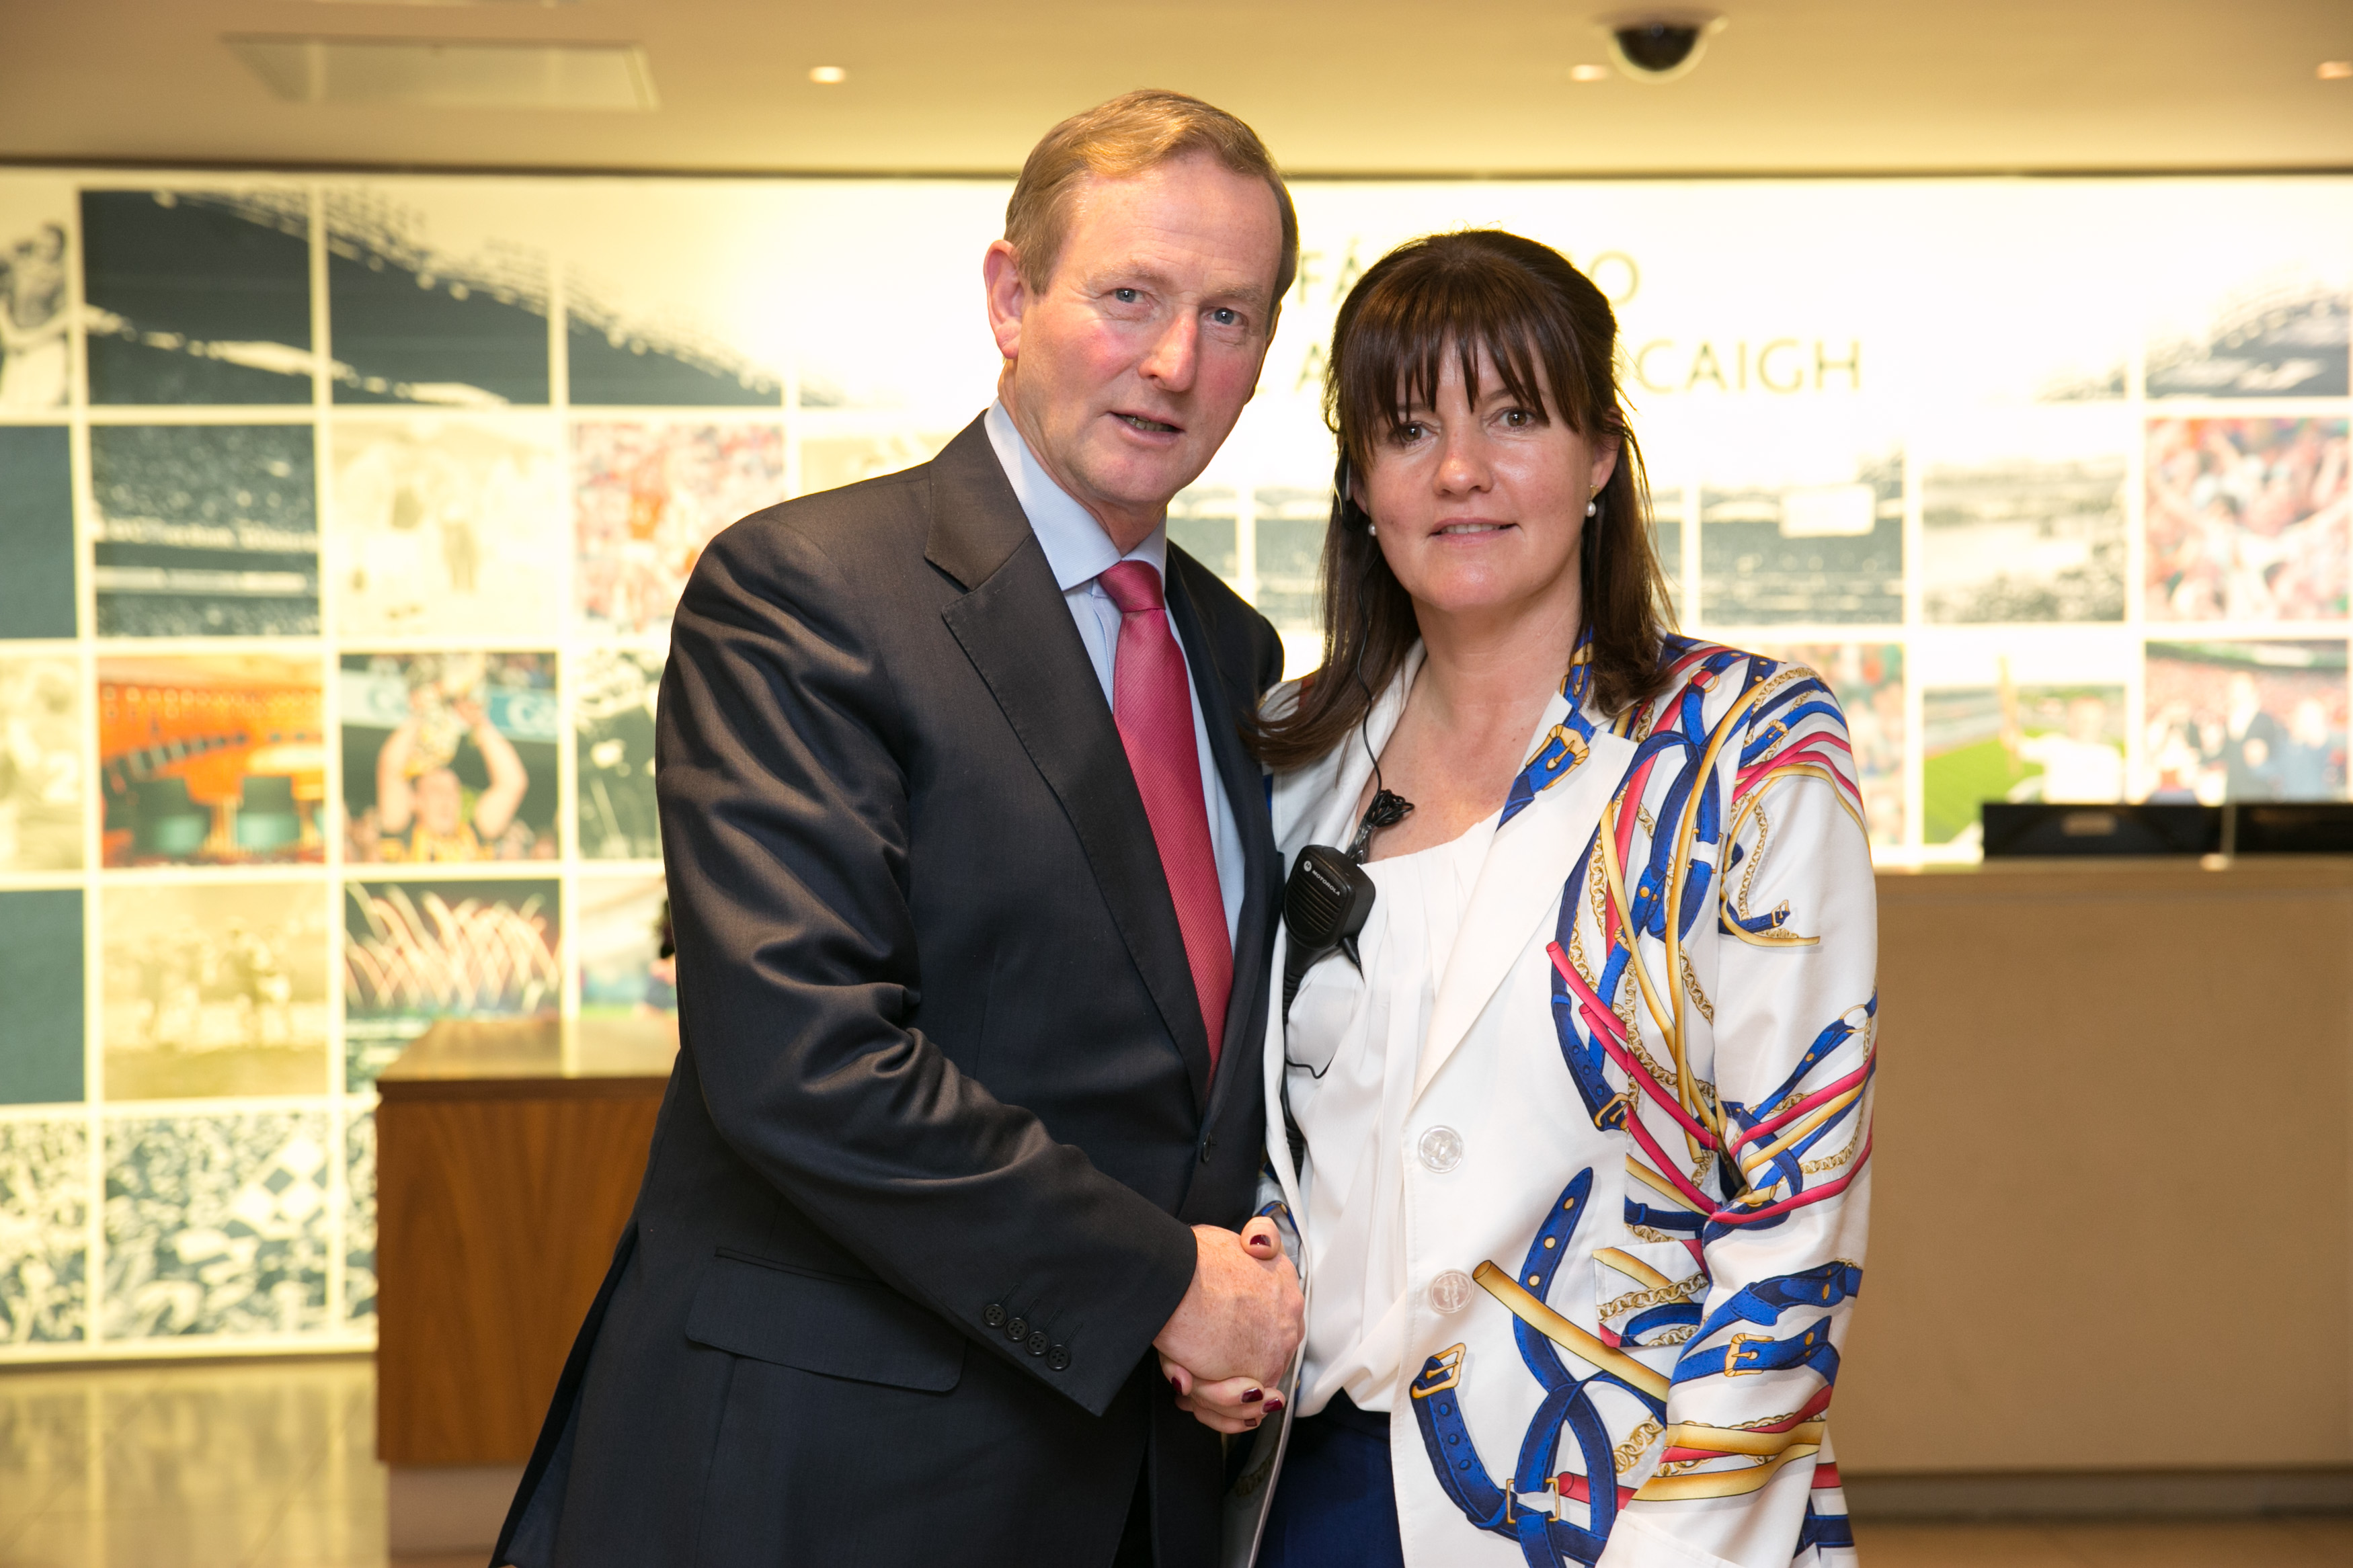 With Taoiseach of the day Enda Kenny in Croke Park